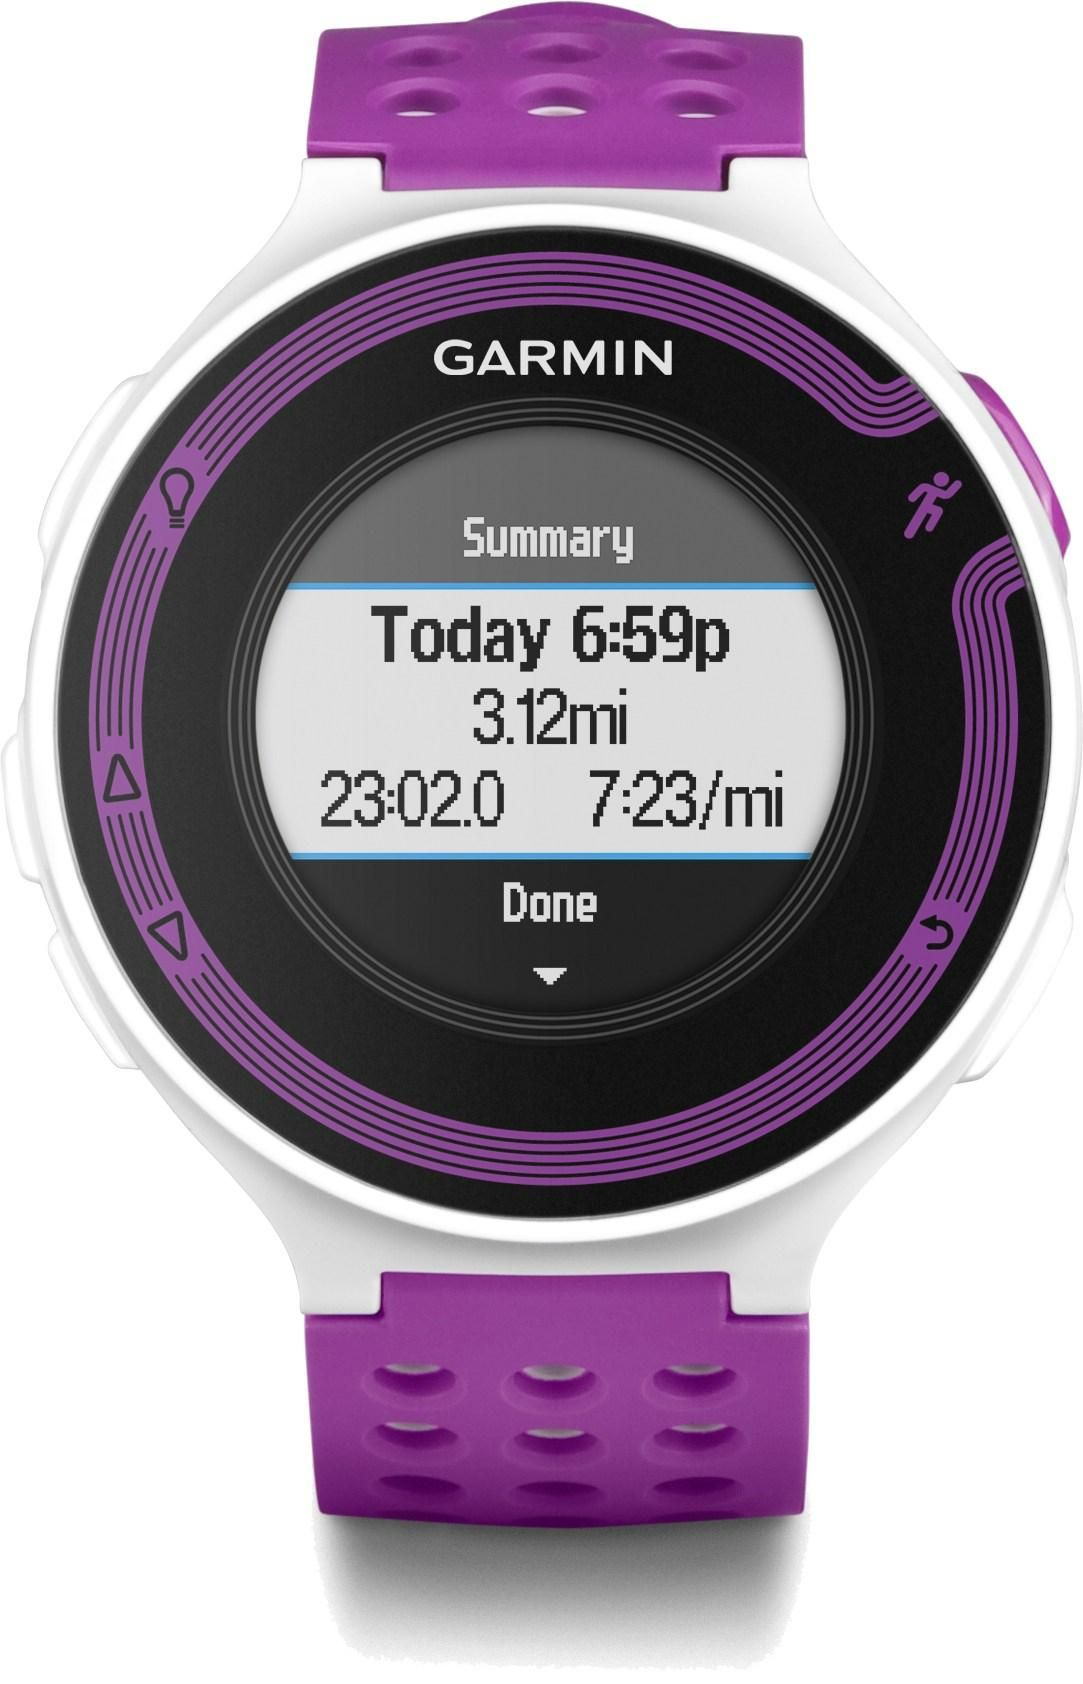 d741b41697c2 Get essential running data like your distance and pace with the Garmin  Forerunner 220 GPS fitness monitor.